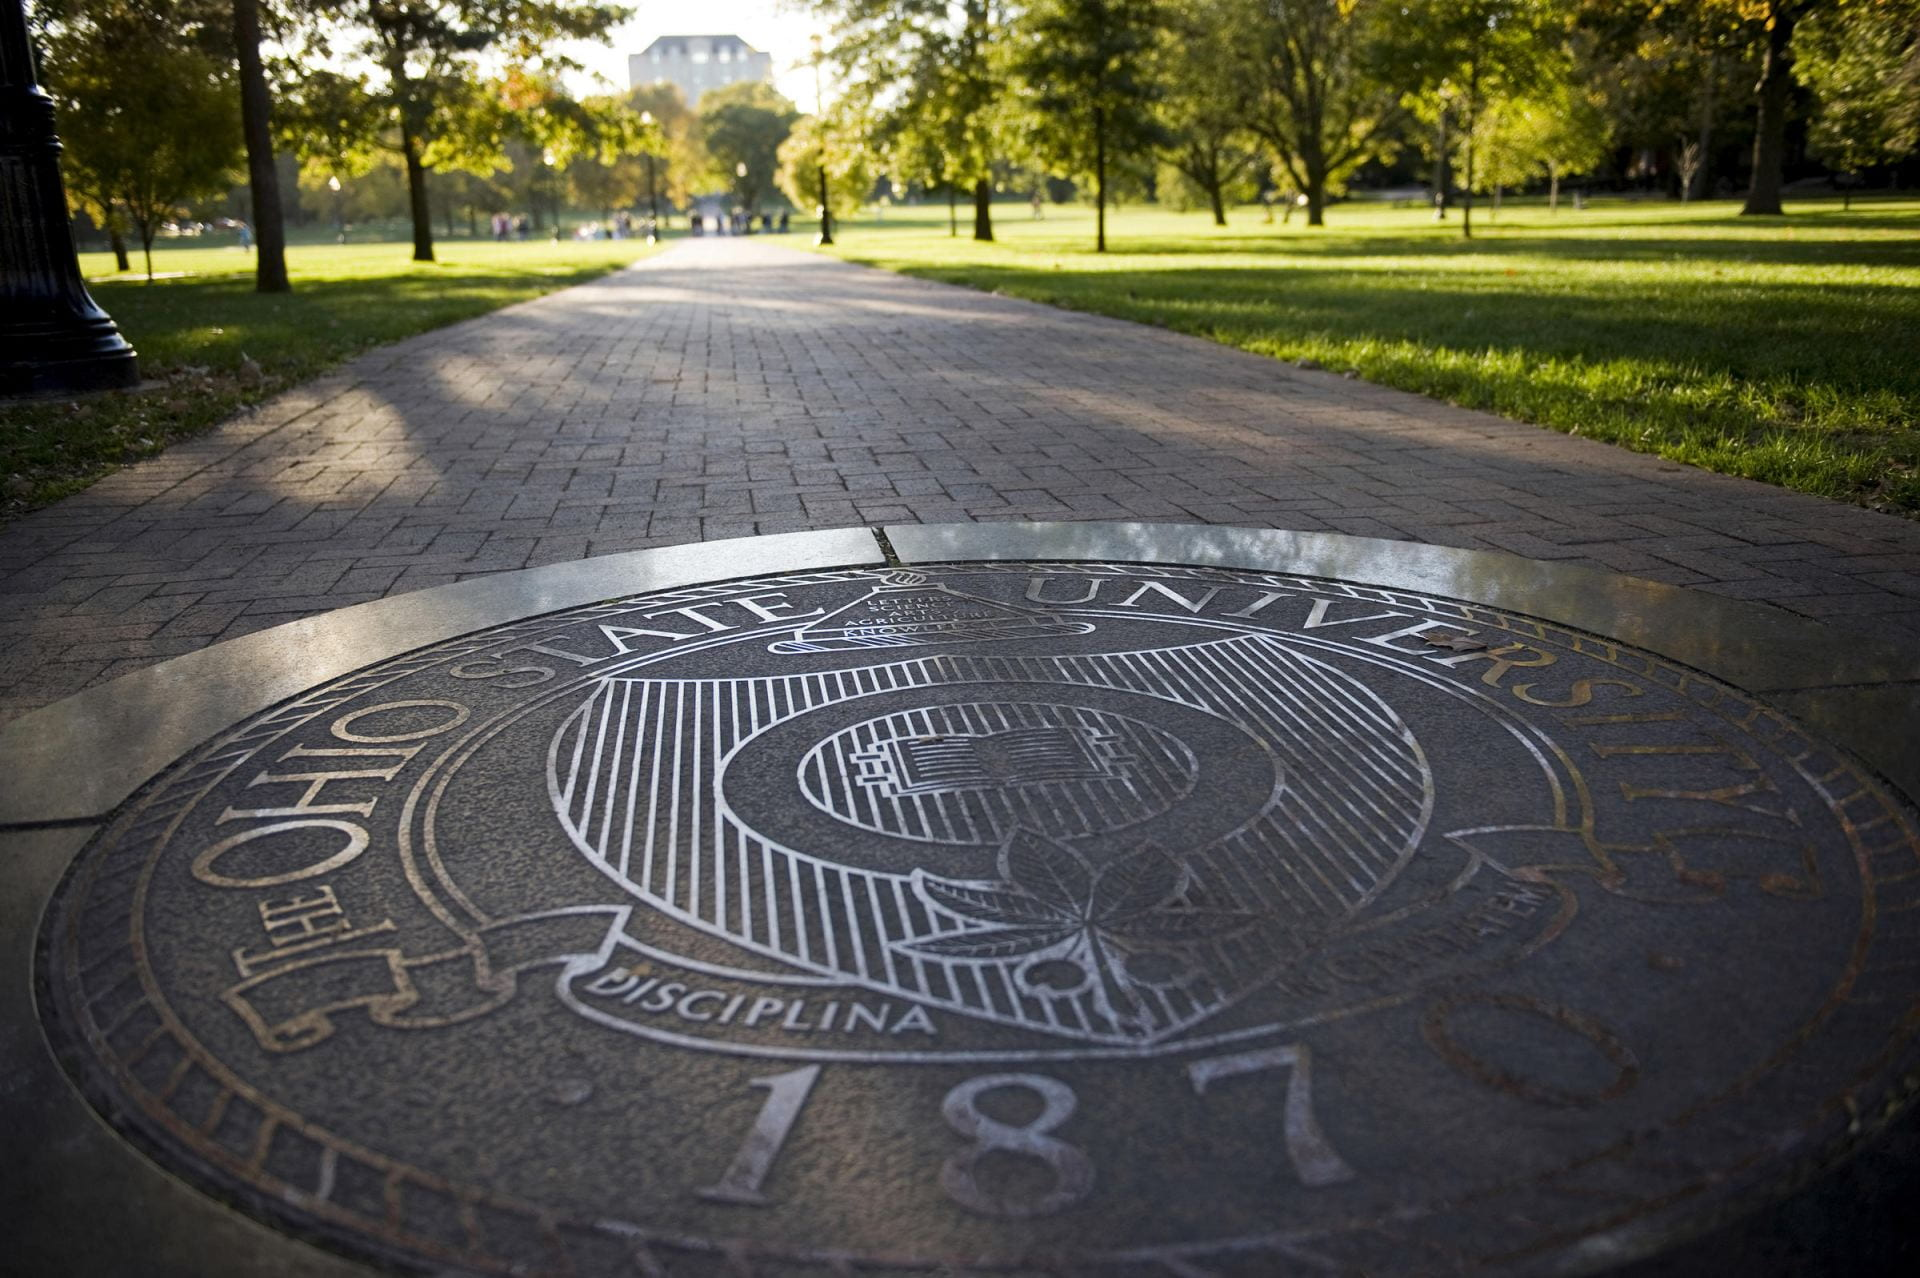 Ohio State announced Monday that applicants to the Columbus campus for the 2021-22 academic year will have the option to not submit ACT or SAT scores.